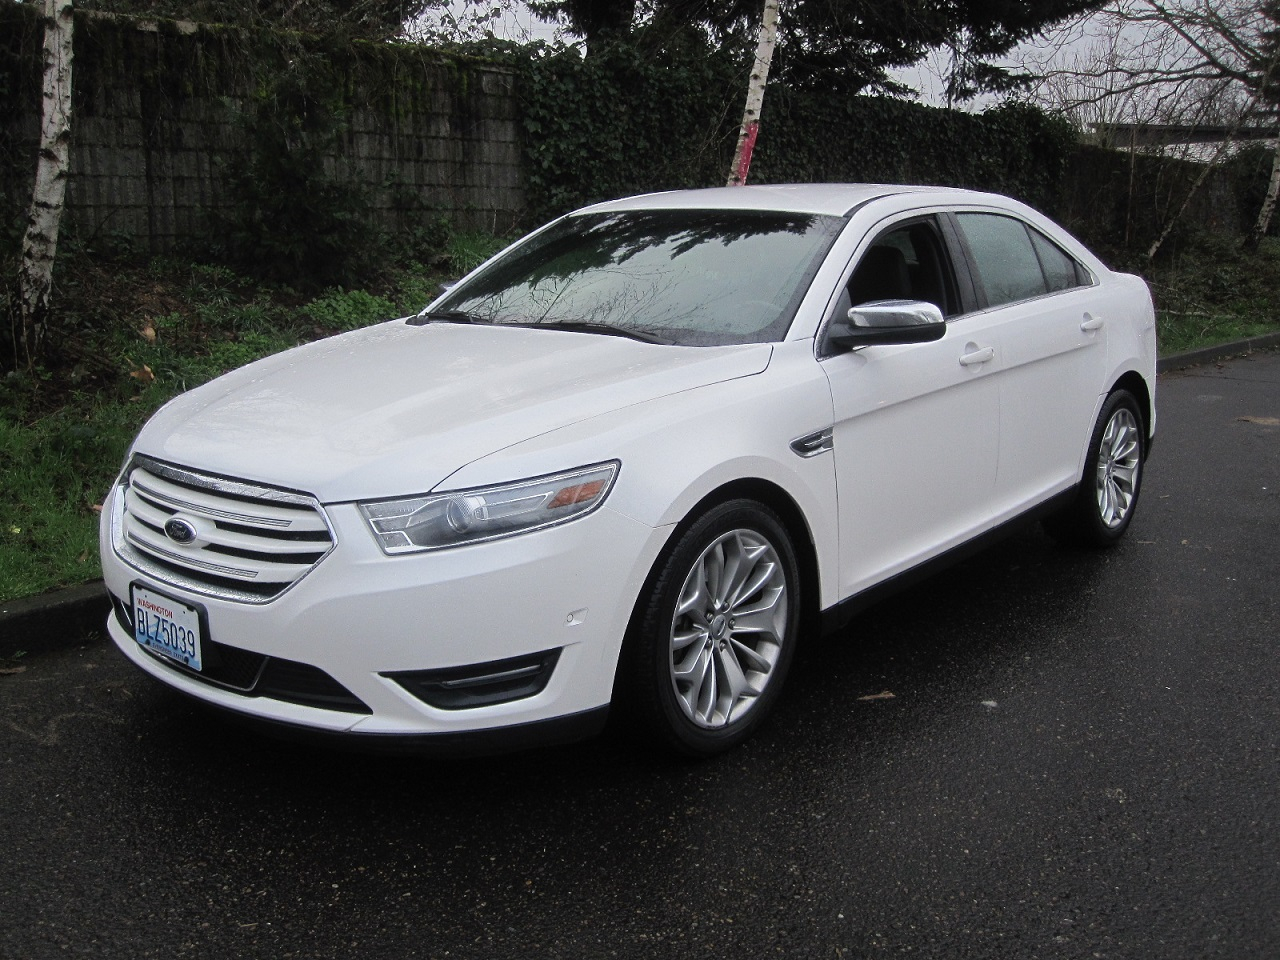 Ford Taurus 4dr Sdn Limited FWD 2013